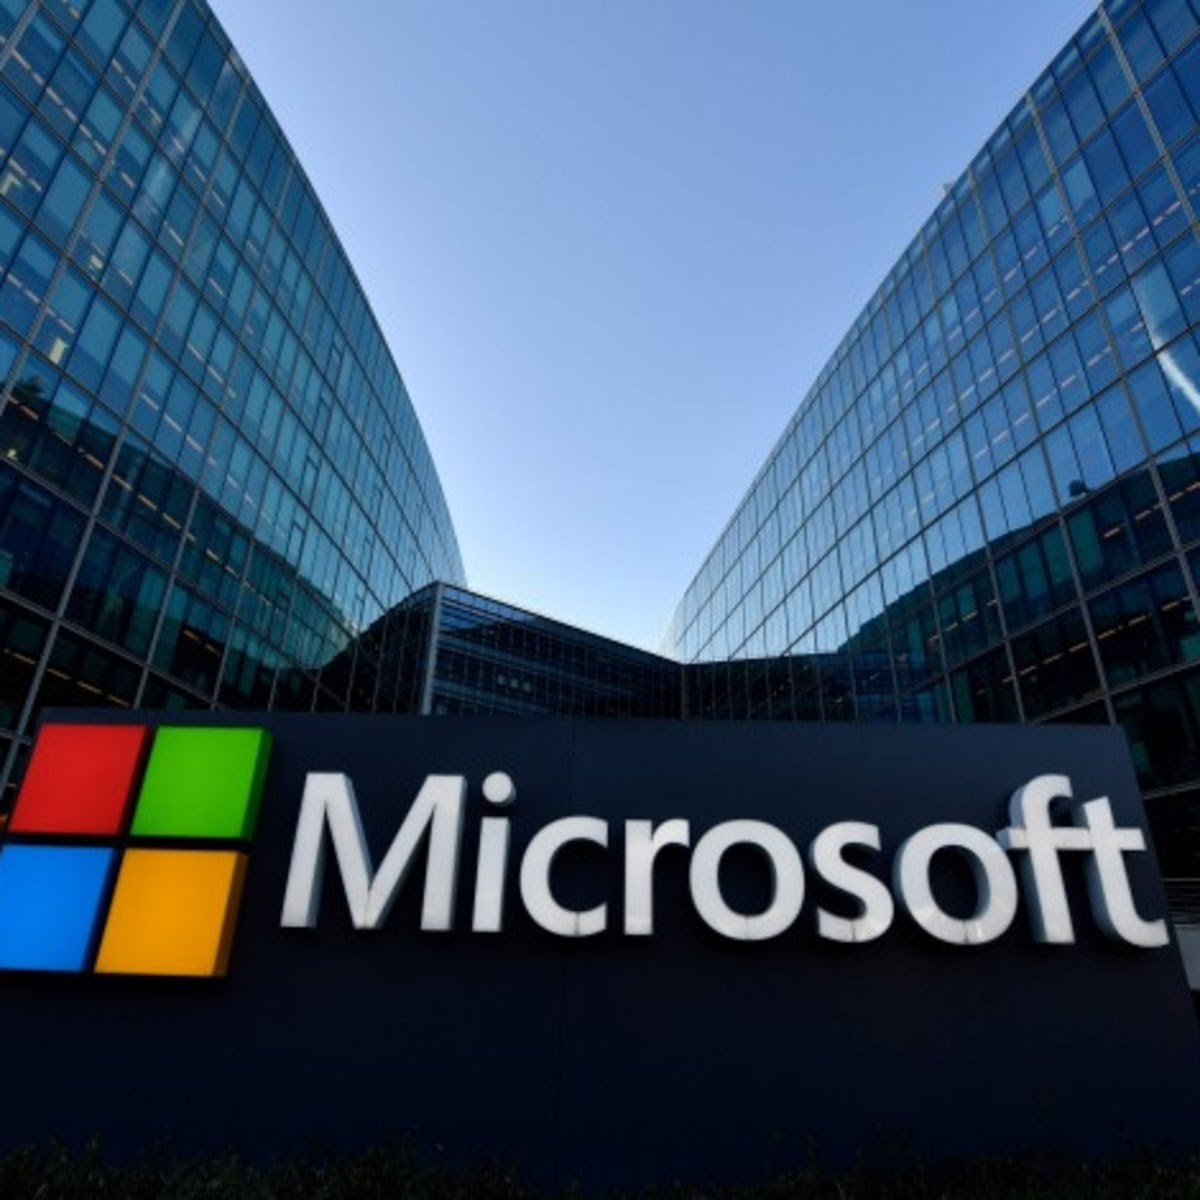 Microsoft Stock Jumps On Dividend Boost, $60 Billion Share Buyback Plans